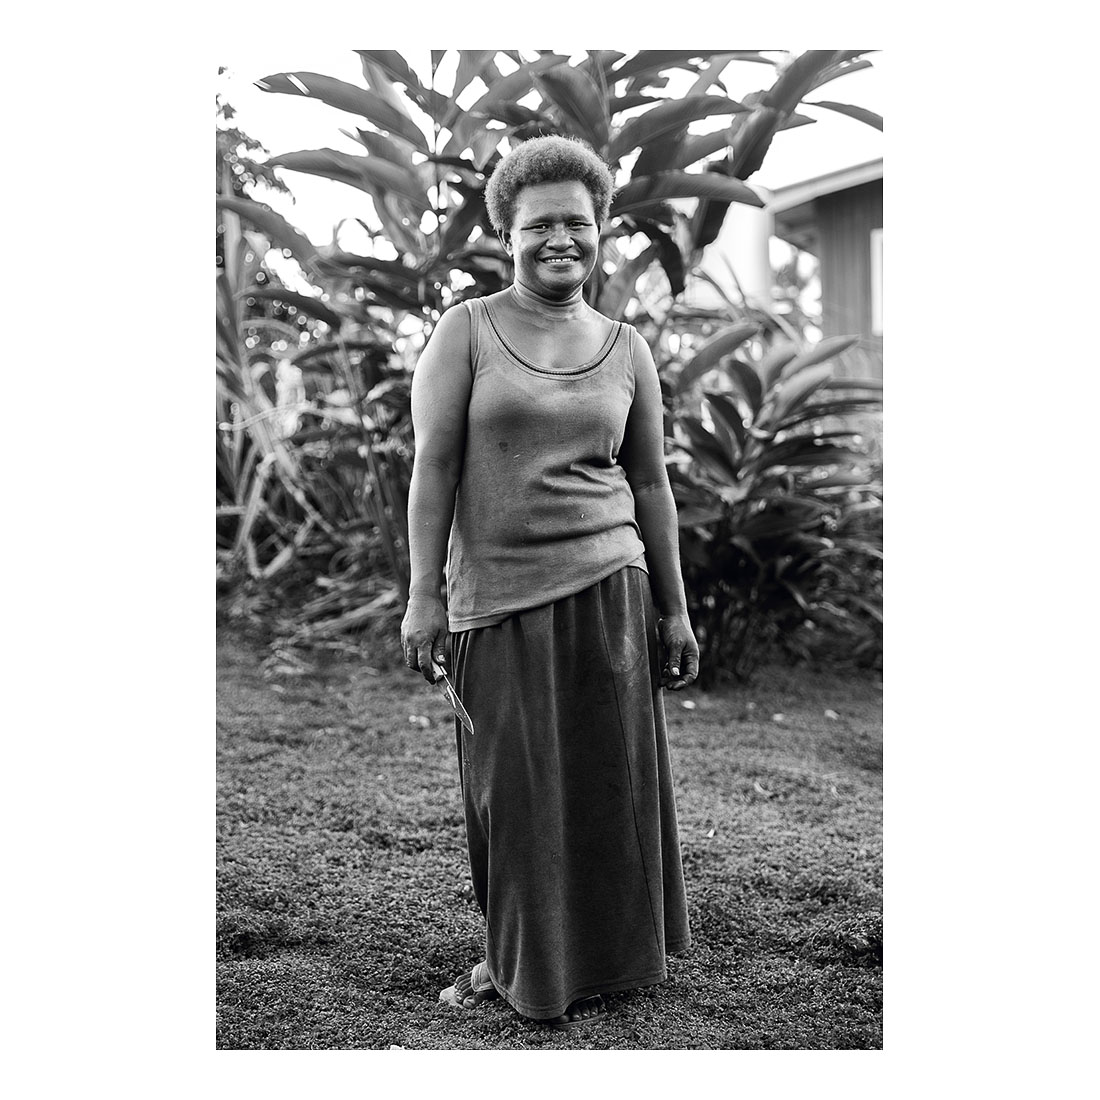 #19 Auki, Malaita, Solomon Islands  (2016).  Archival pigment print on Ilford paper. Exhibition print 36cm x 24cm. Different sizes available.